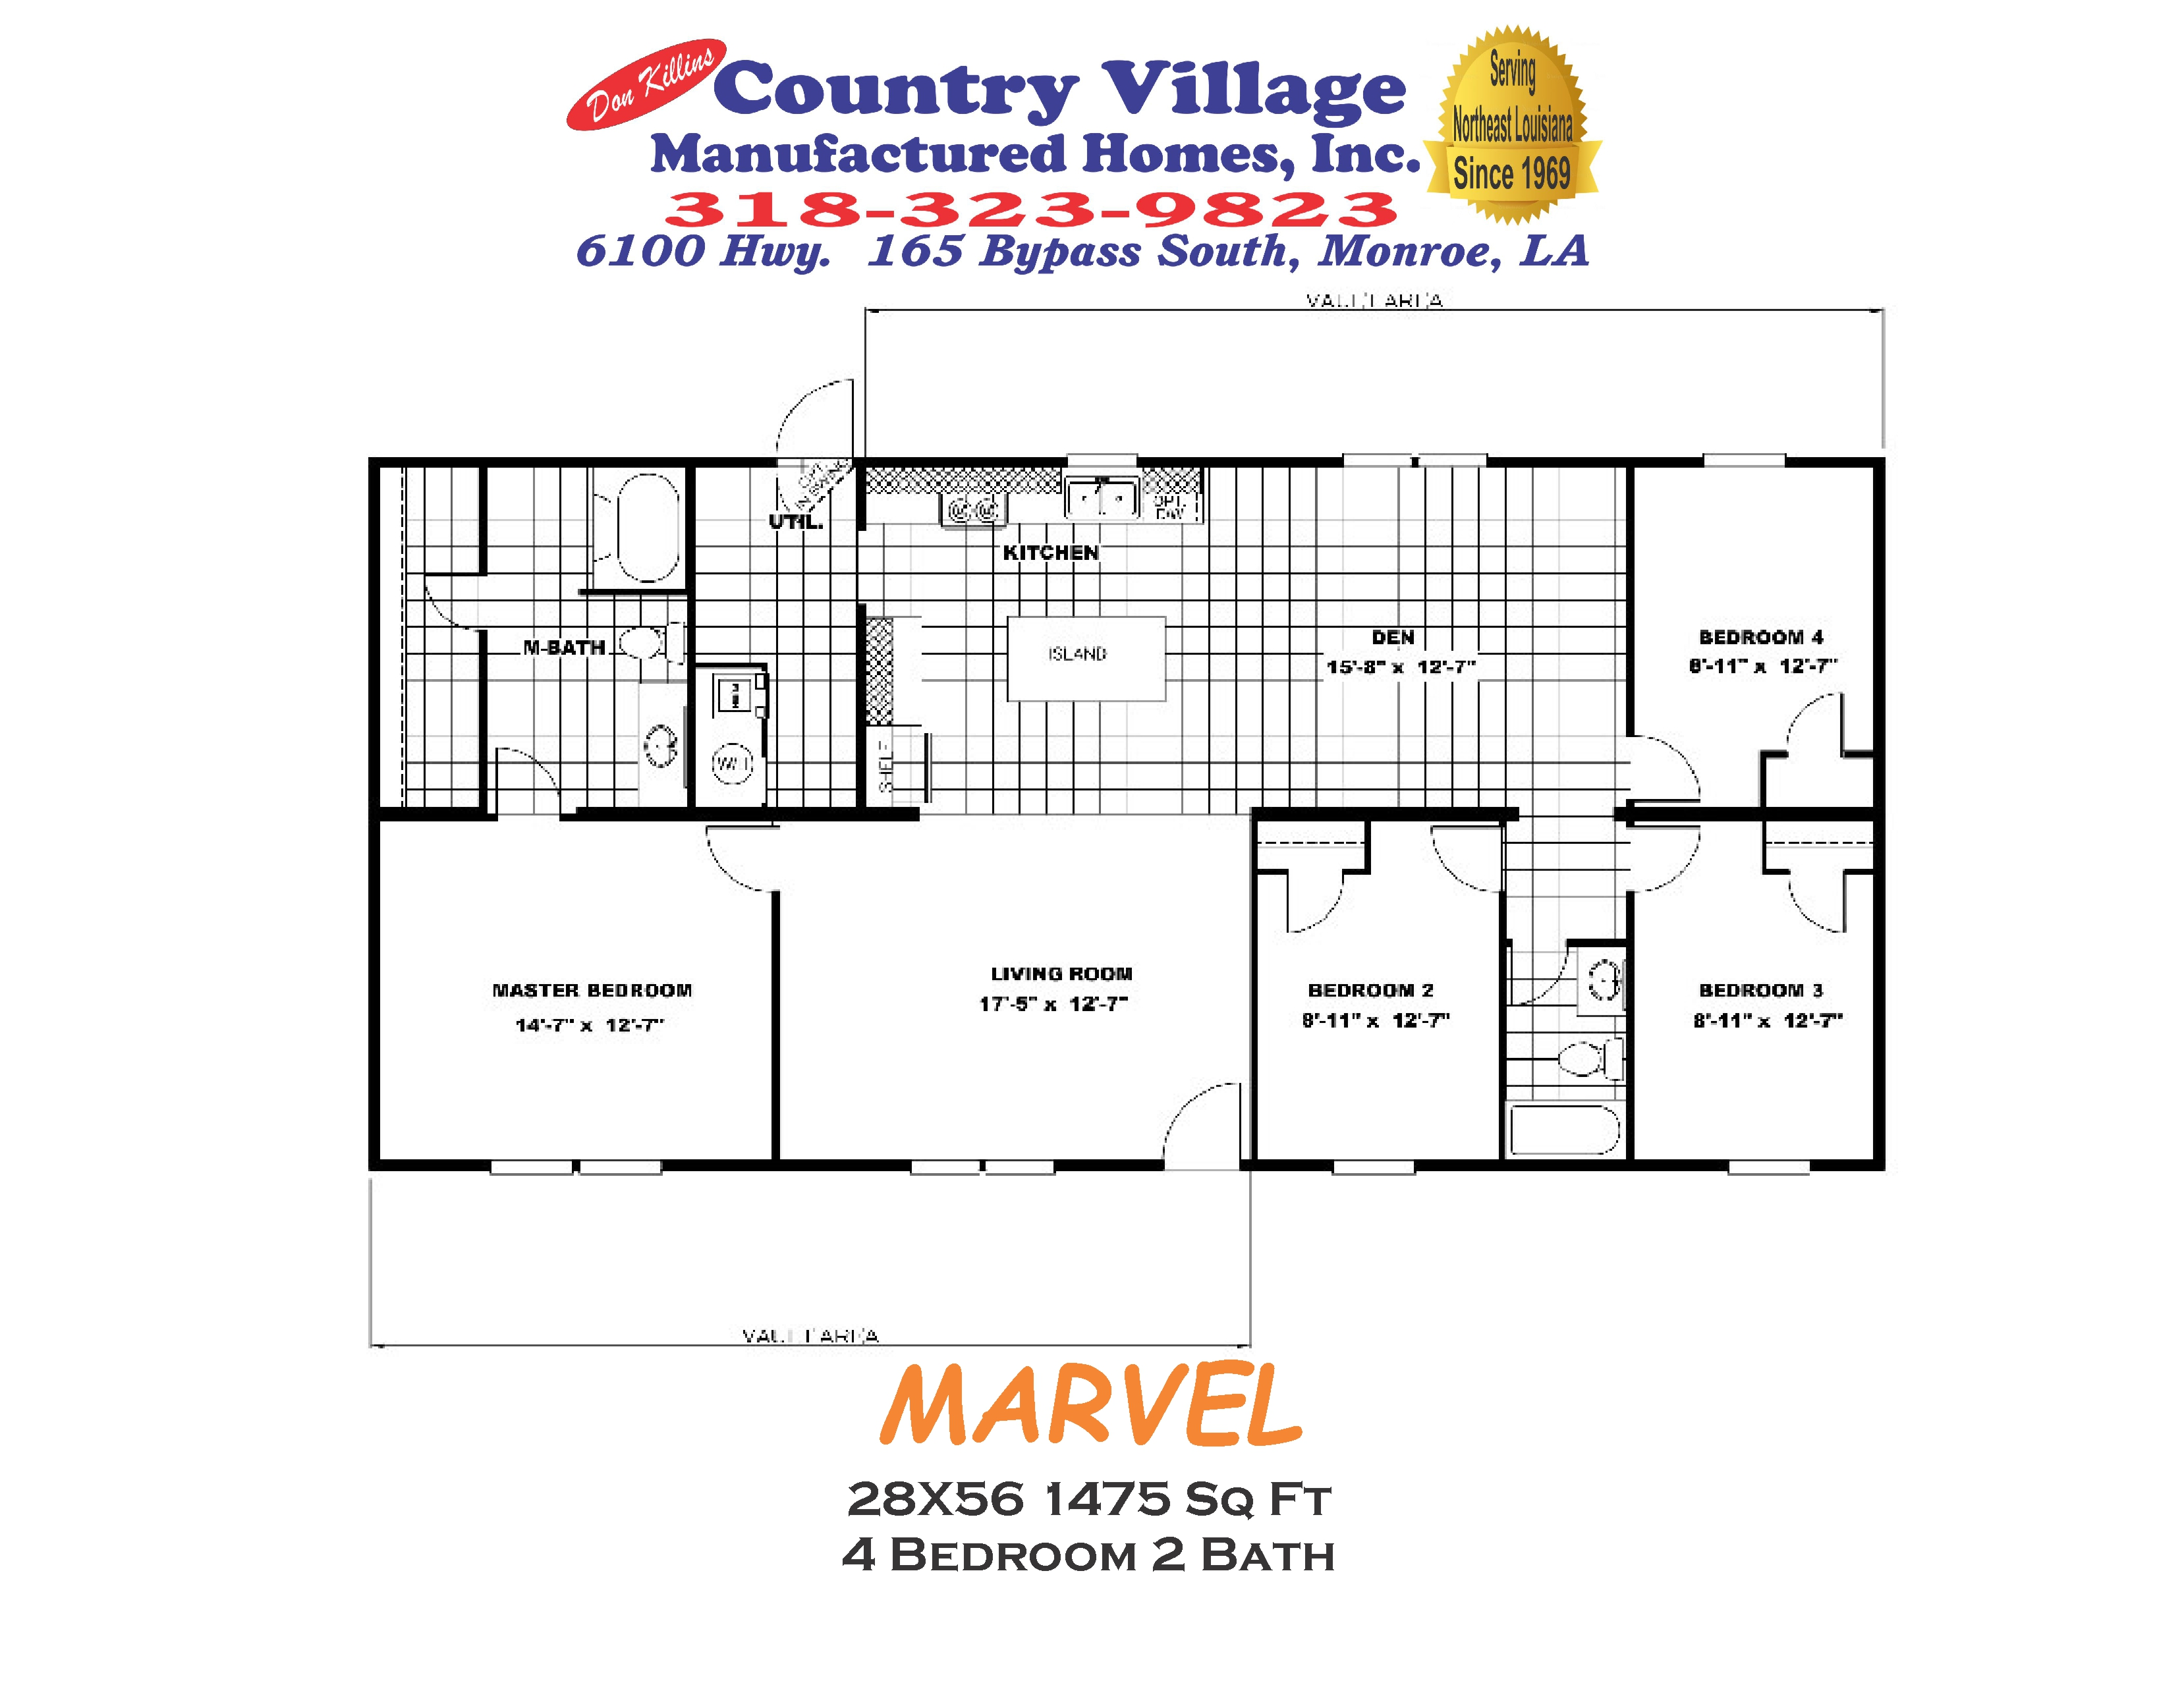 MARVEL 28X56 1475 sq ft 4+2